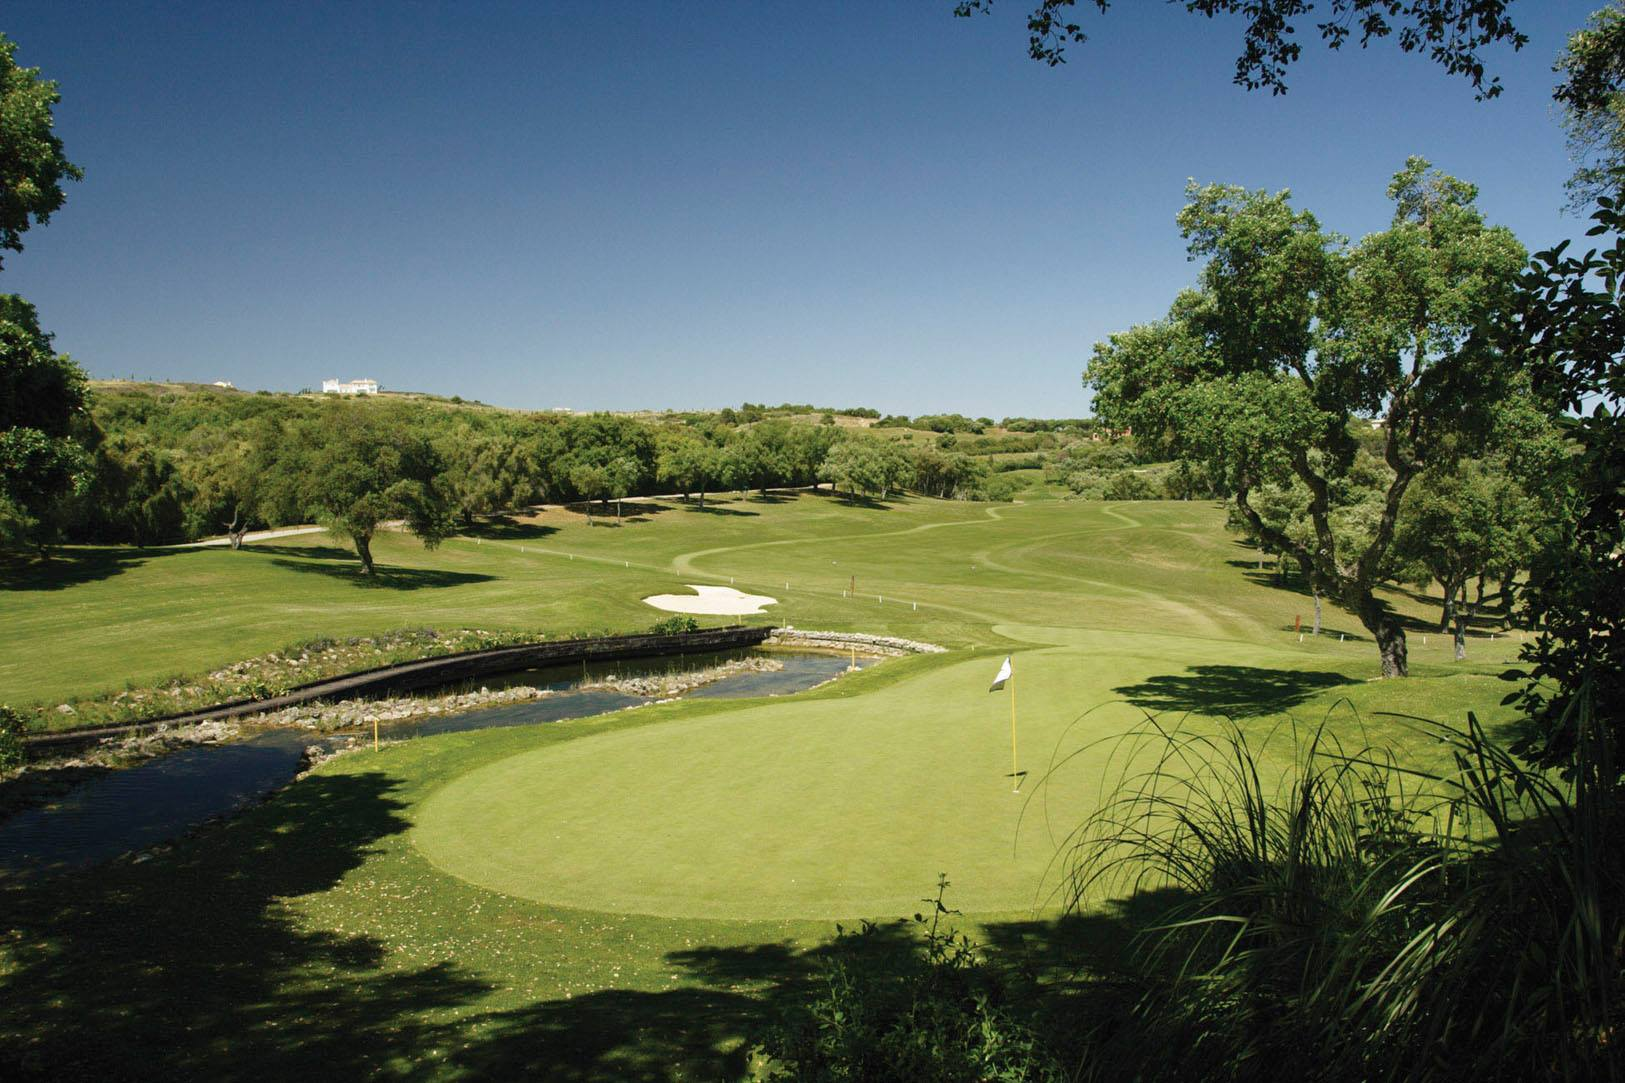 Visit Cadiz, Spain on our 2017 Iberian Peninsula Golf Cruise and play Valderrama!